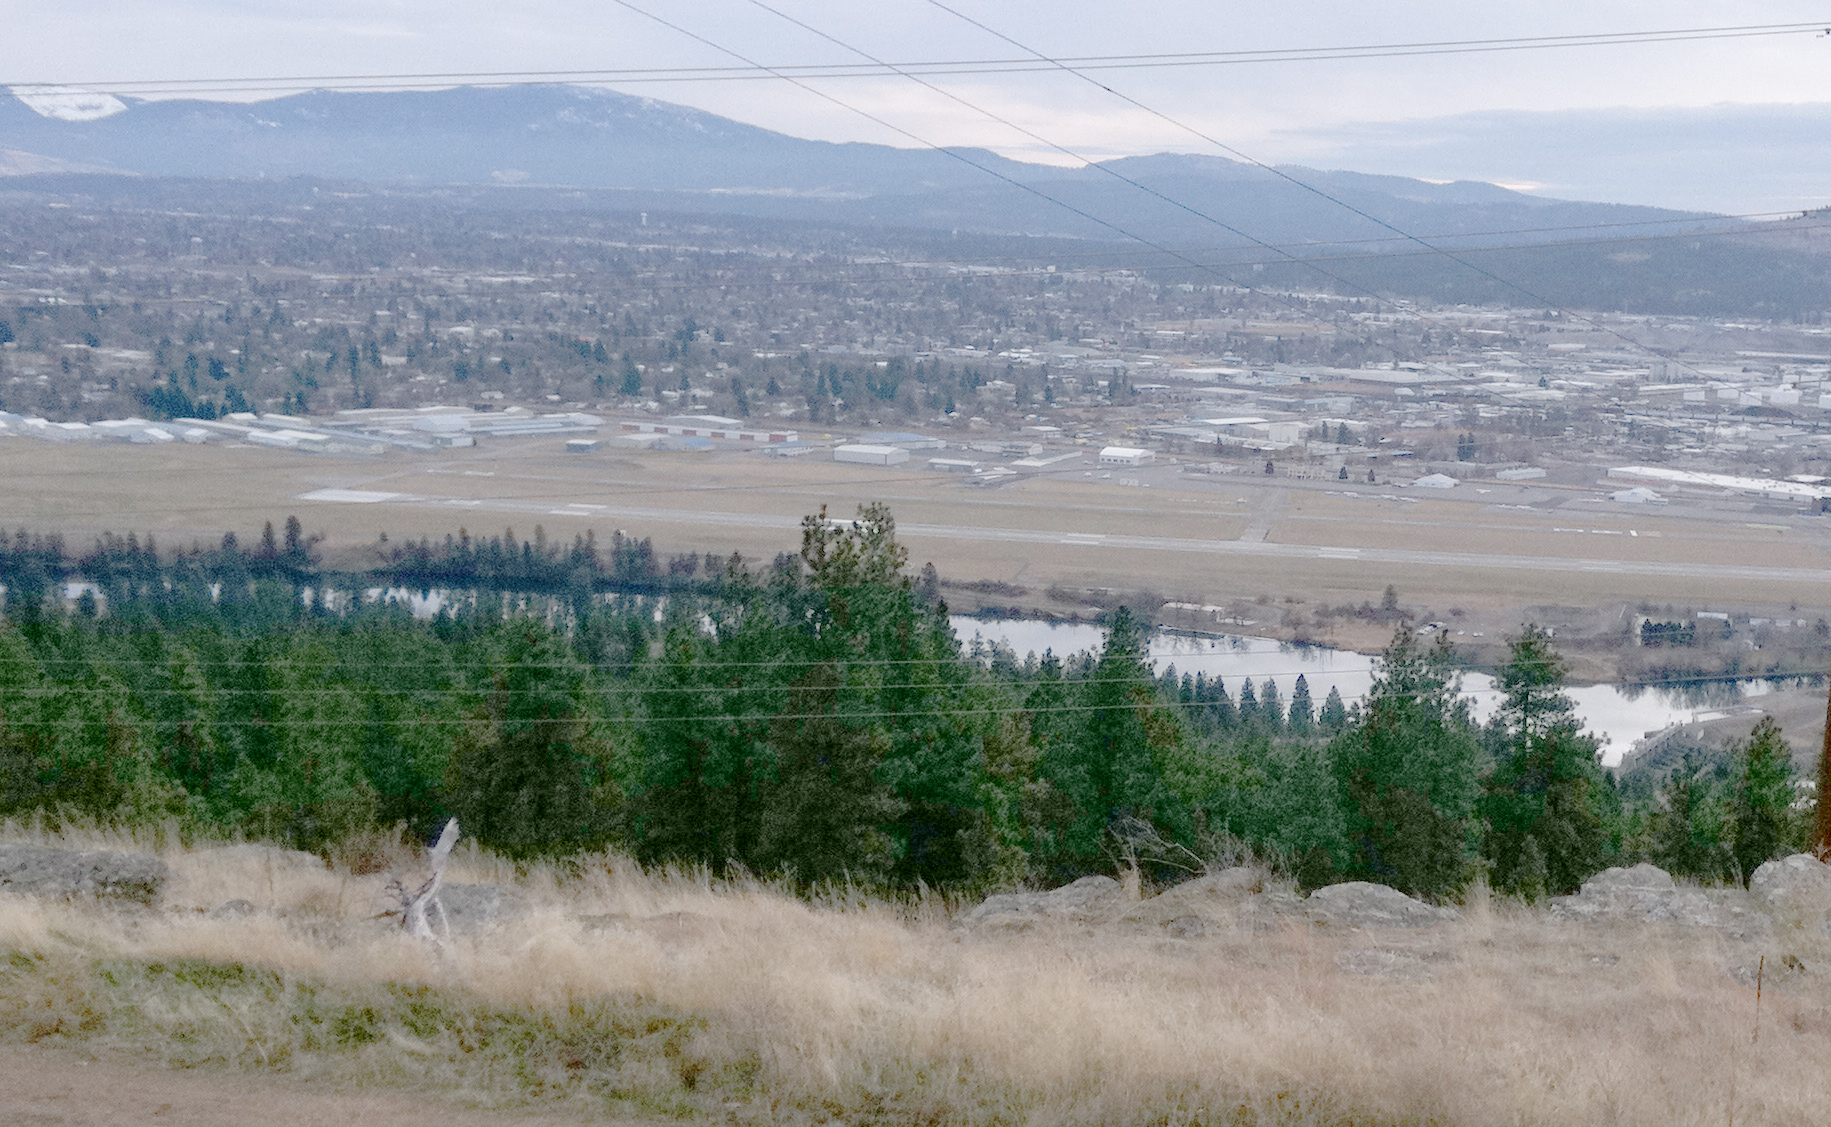 Beacon Hill - Overlooking the Spokane Valley